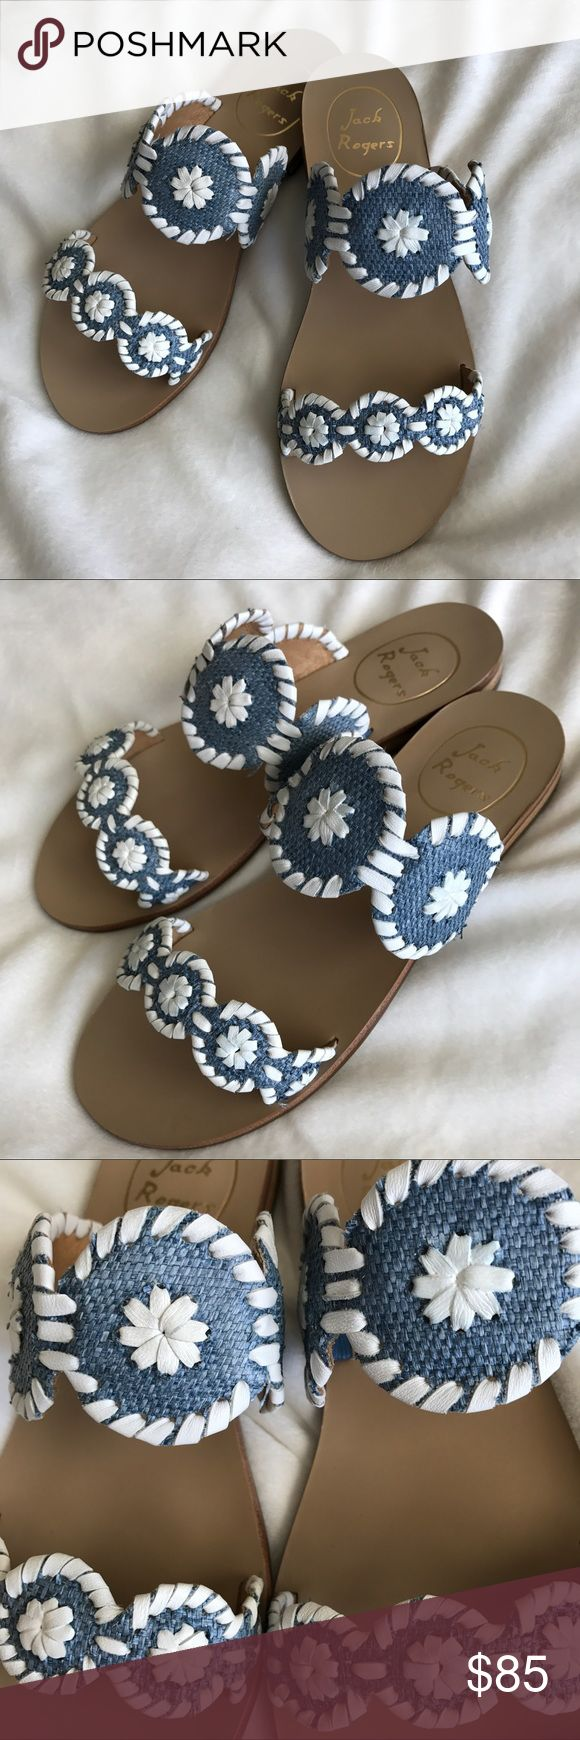 Jack Rogers Lauren in Blue Raffia Brand New with Box! Classic Jack Rogers Lauren in sold out Denim Blue with White stitching. A must have for this summer! Jack Rogers Shoes Sandals